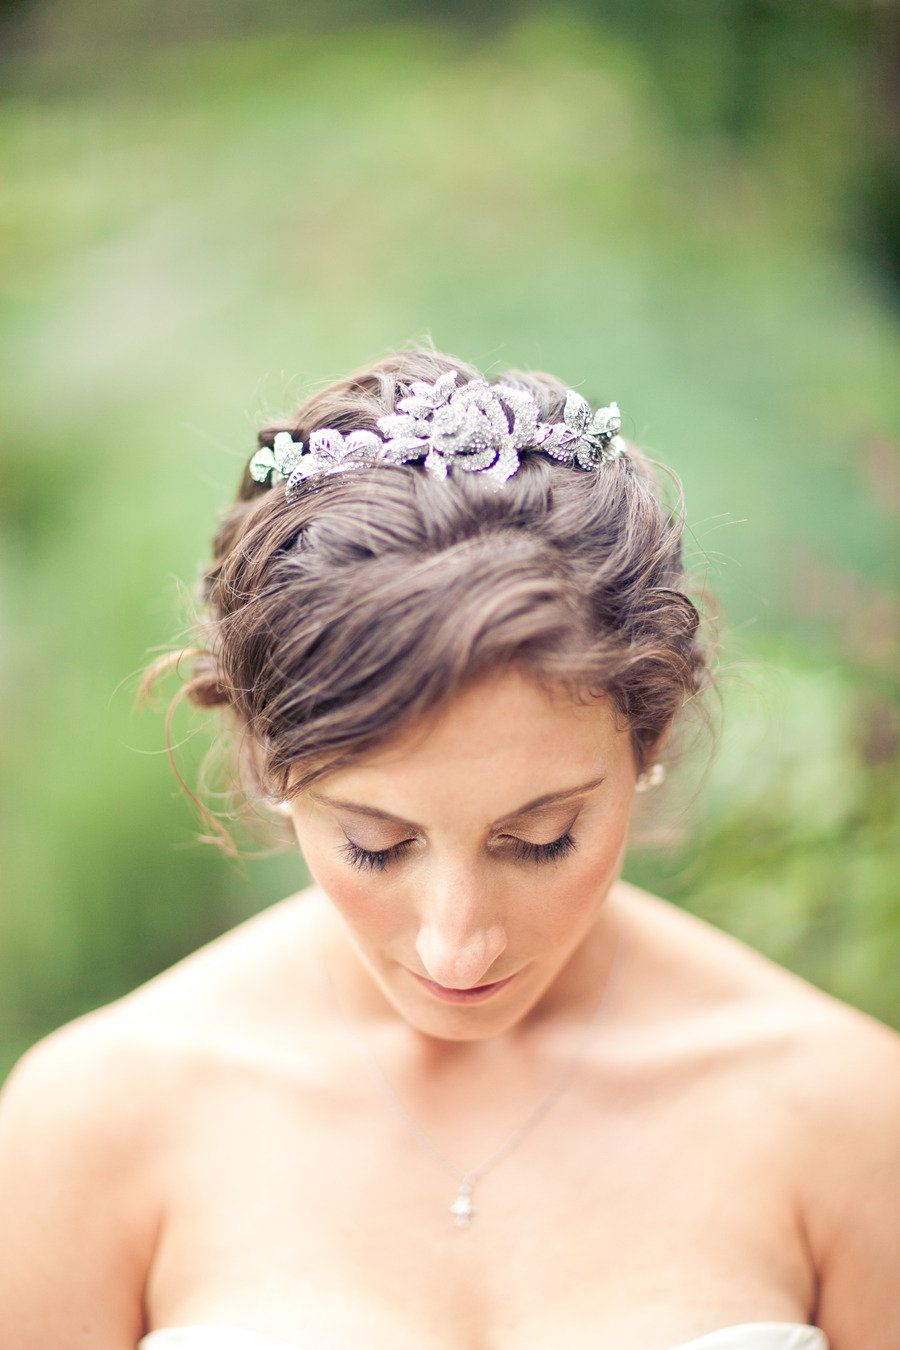 Very pretty hair accessory ...  Photography by mibelleinc.com